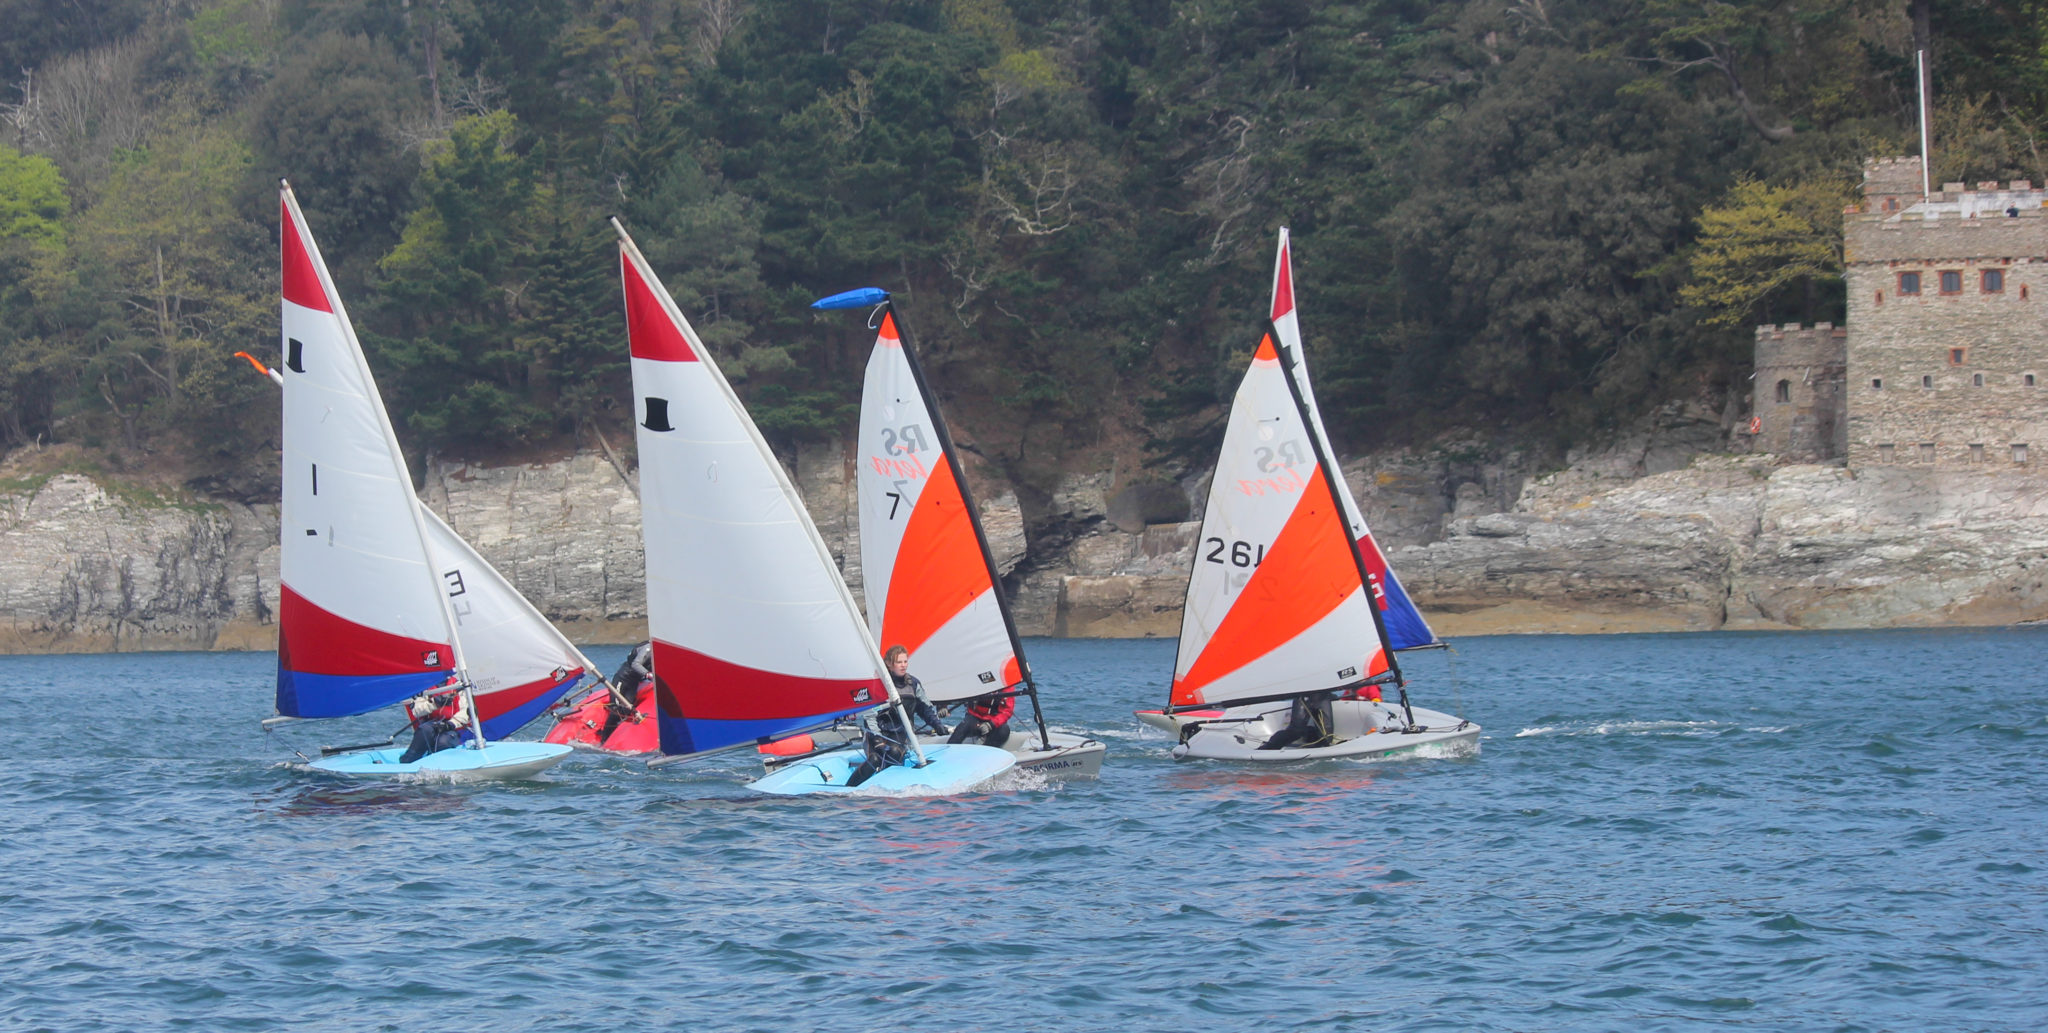 South West Youth Sailing Academy Andrew Simpson Sailing